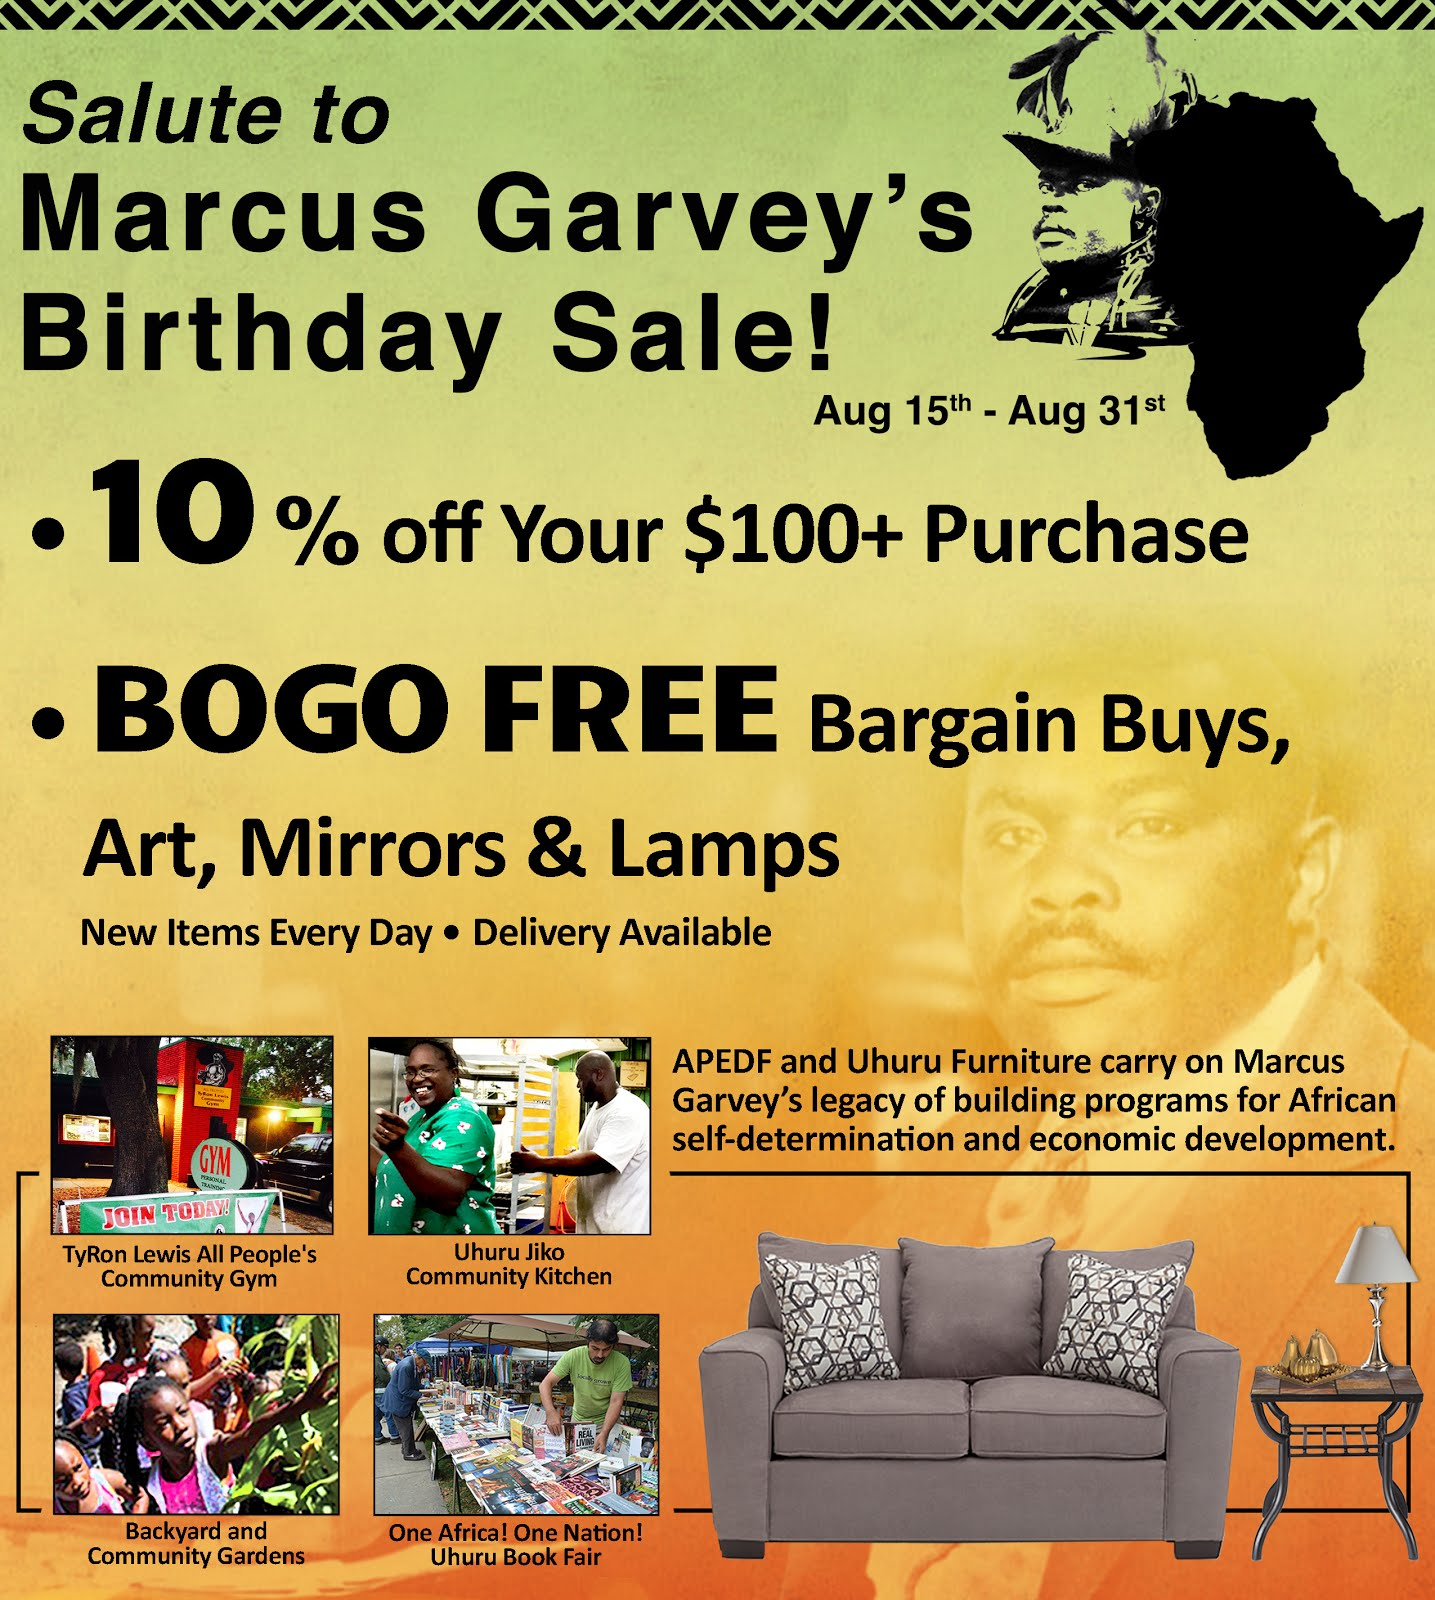 Salute to Marcus Garvey's Birthday Sale!